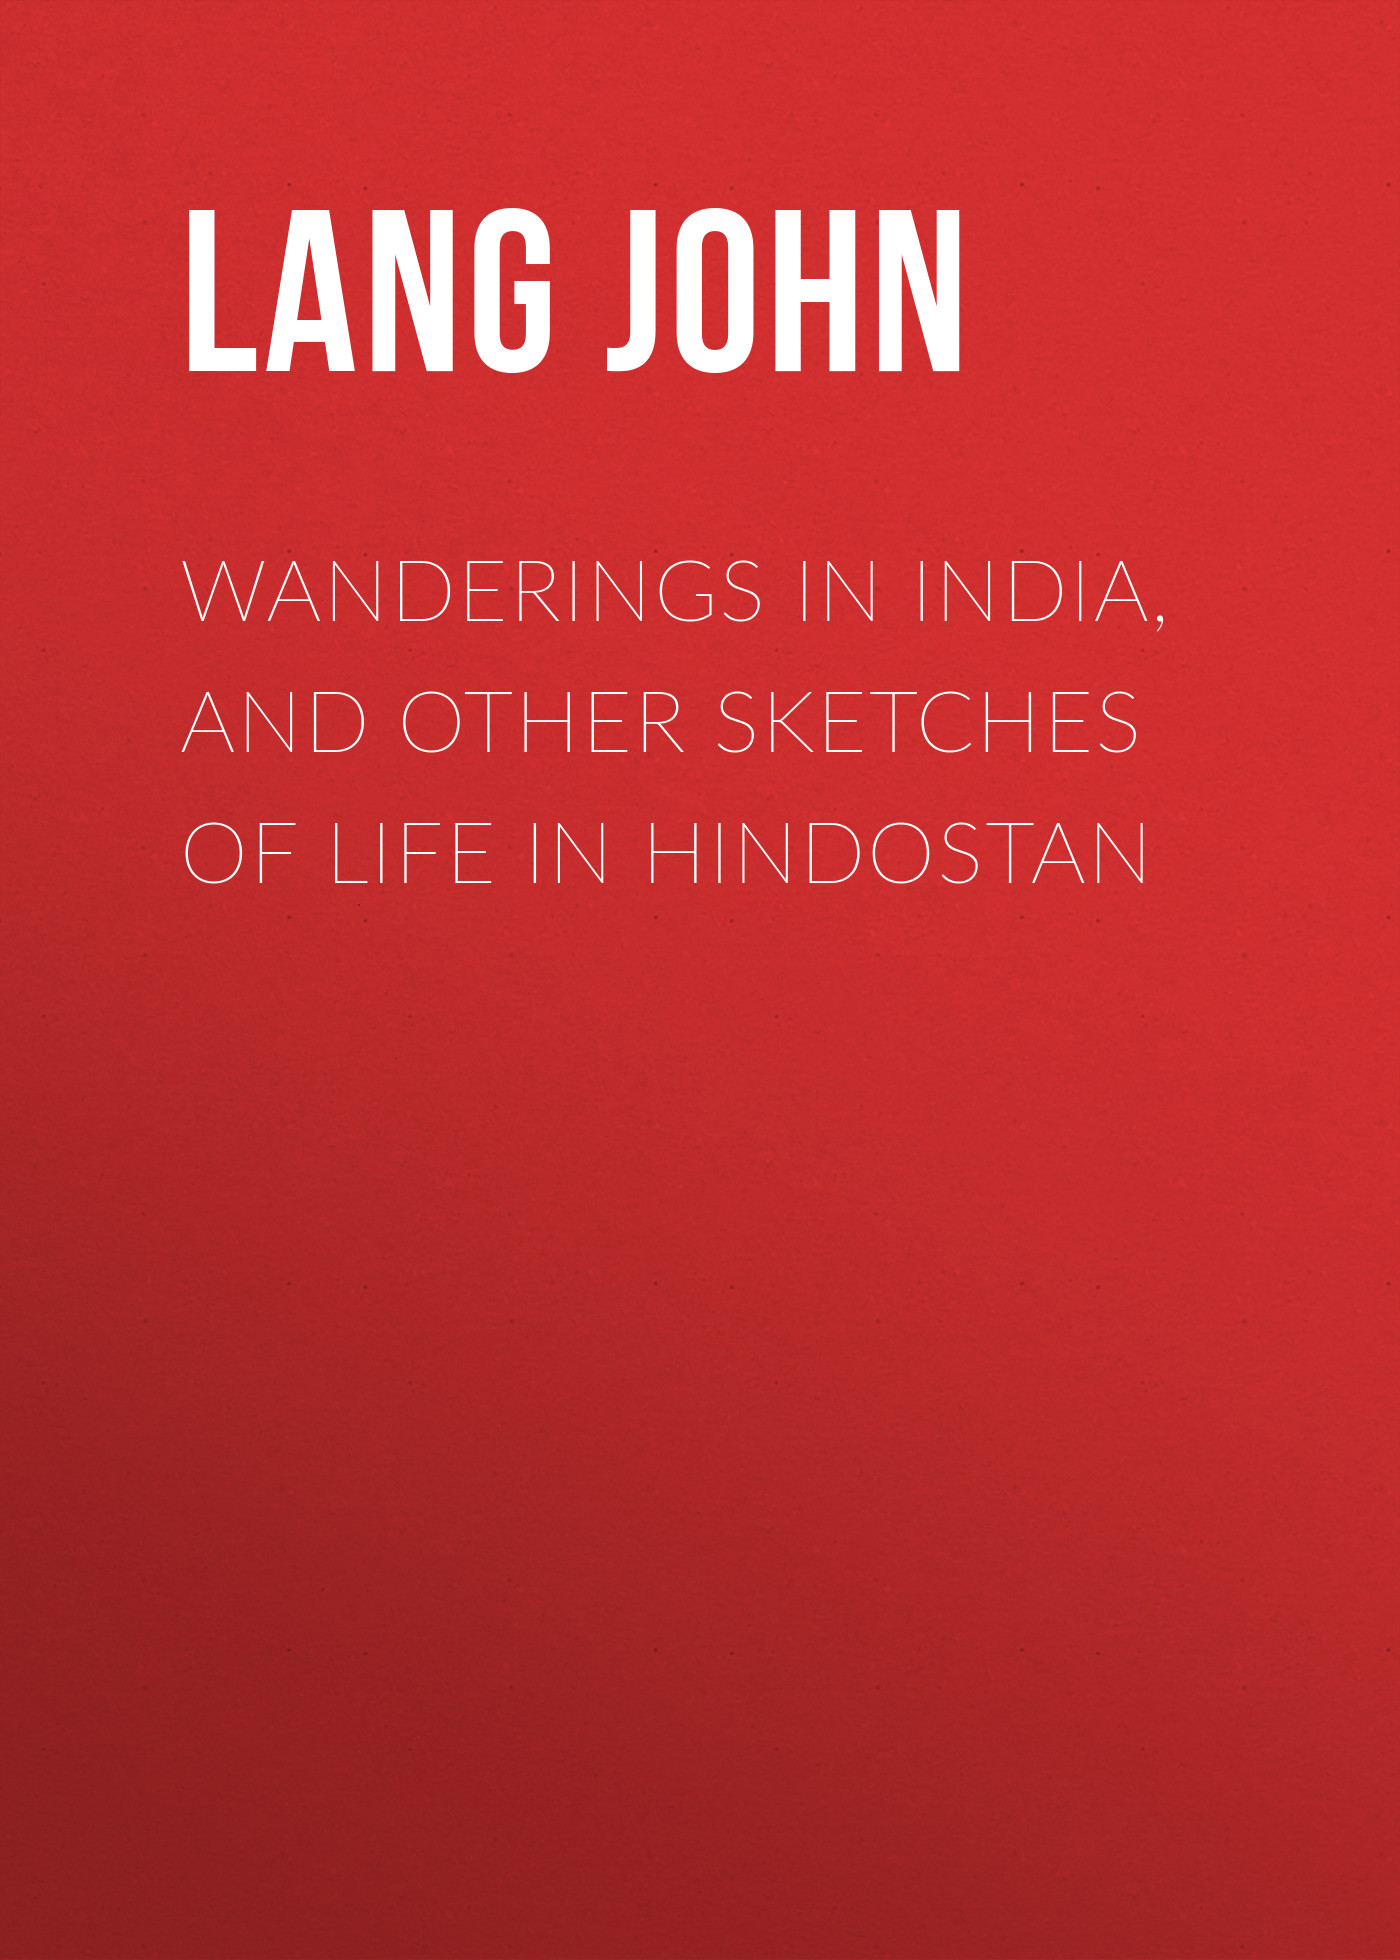 Lang John Wanderings in India, and Other Sketches of Life in Hindostan baby bedding set crib bumper children sleeping bag infant sleepsack includes pillowcase pillow inner duvet cover and filler d3